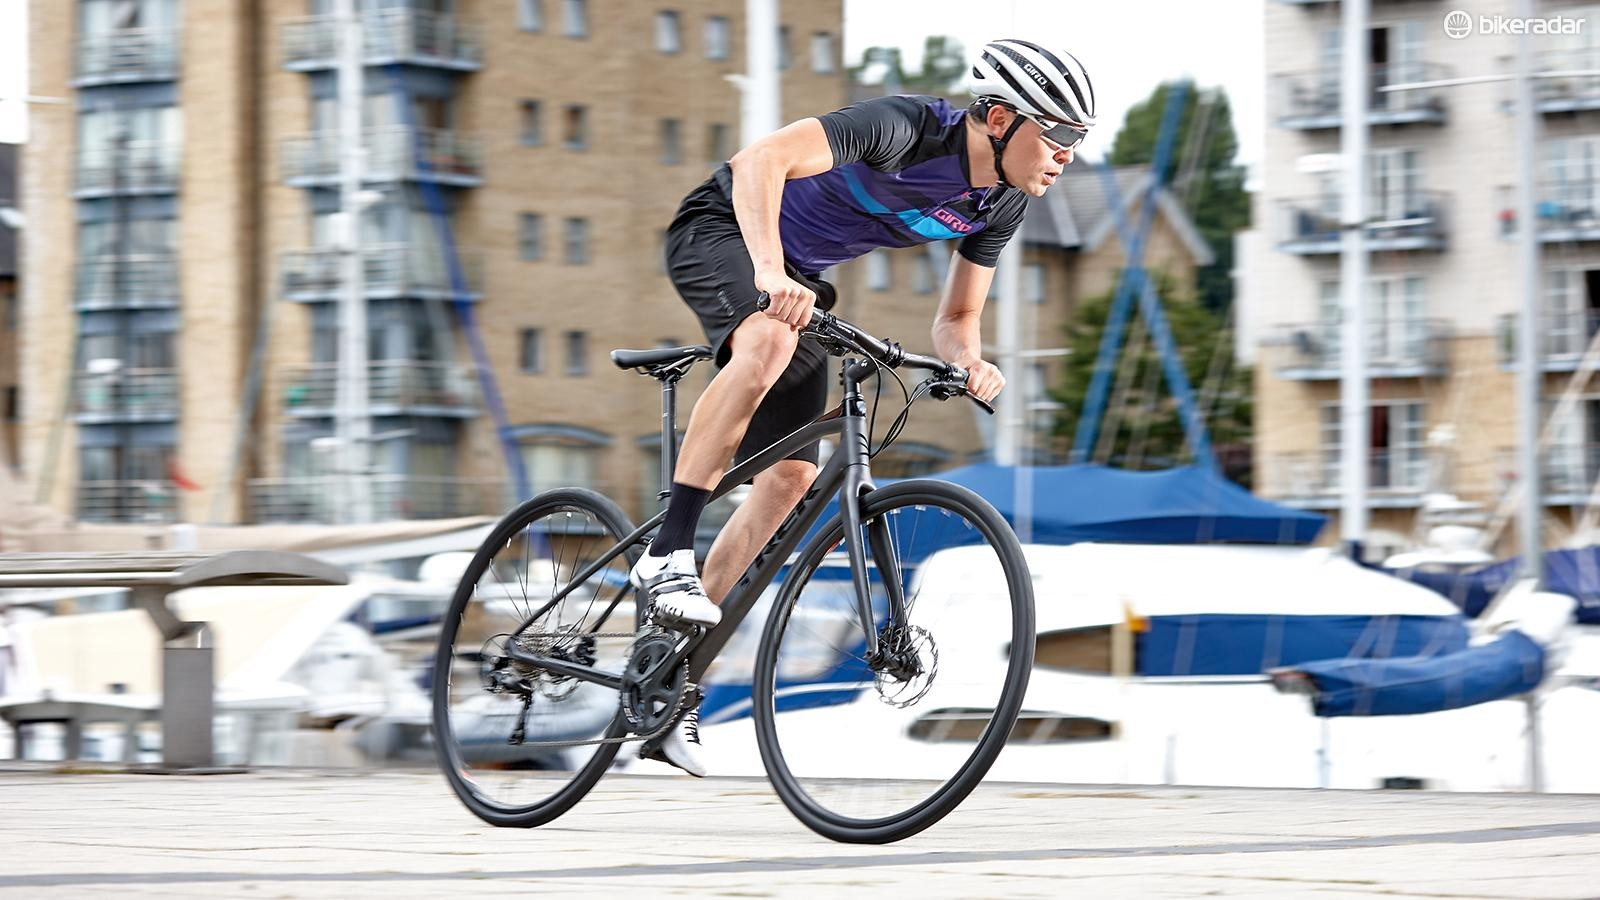 The Sport 6 is an extremely capable bike that is a joy to ride